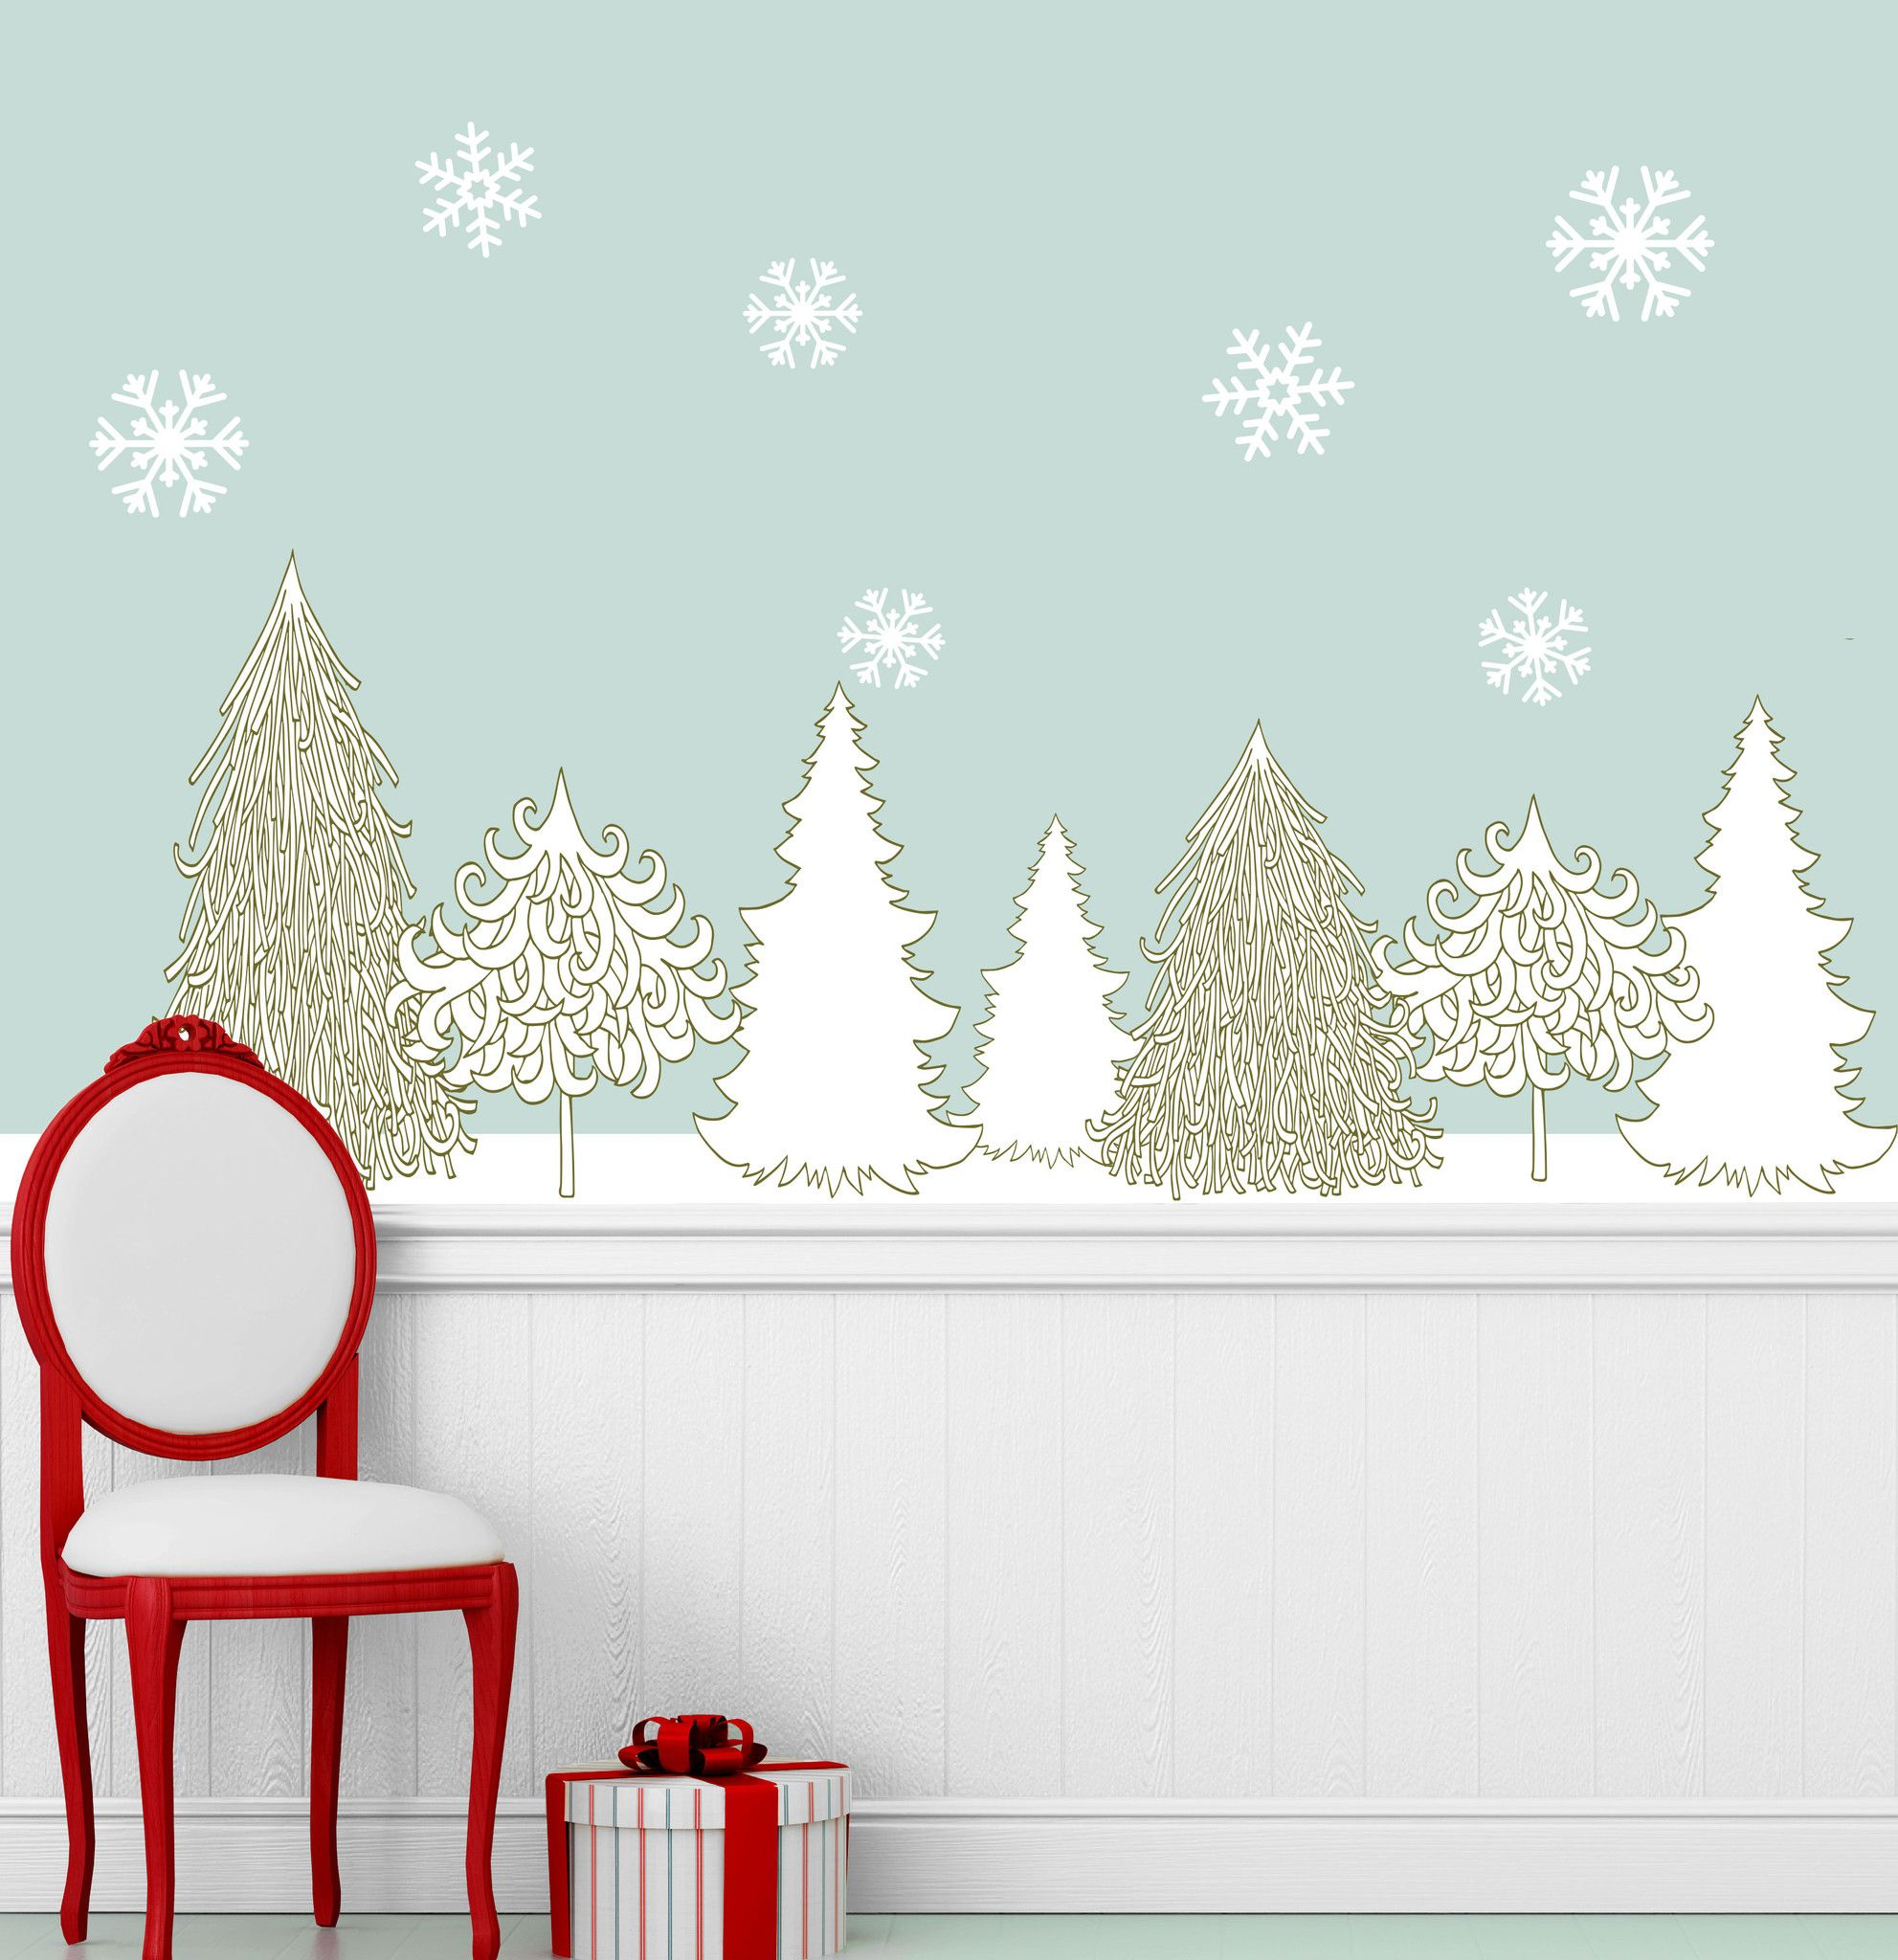 Winter Wonderland Decal Set Holiday Wall Decor Stickers Snowflakes Trees Holiday Wall Decor Wall Decor Stickers Wall Decor Decals